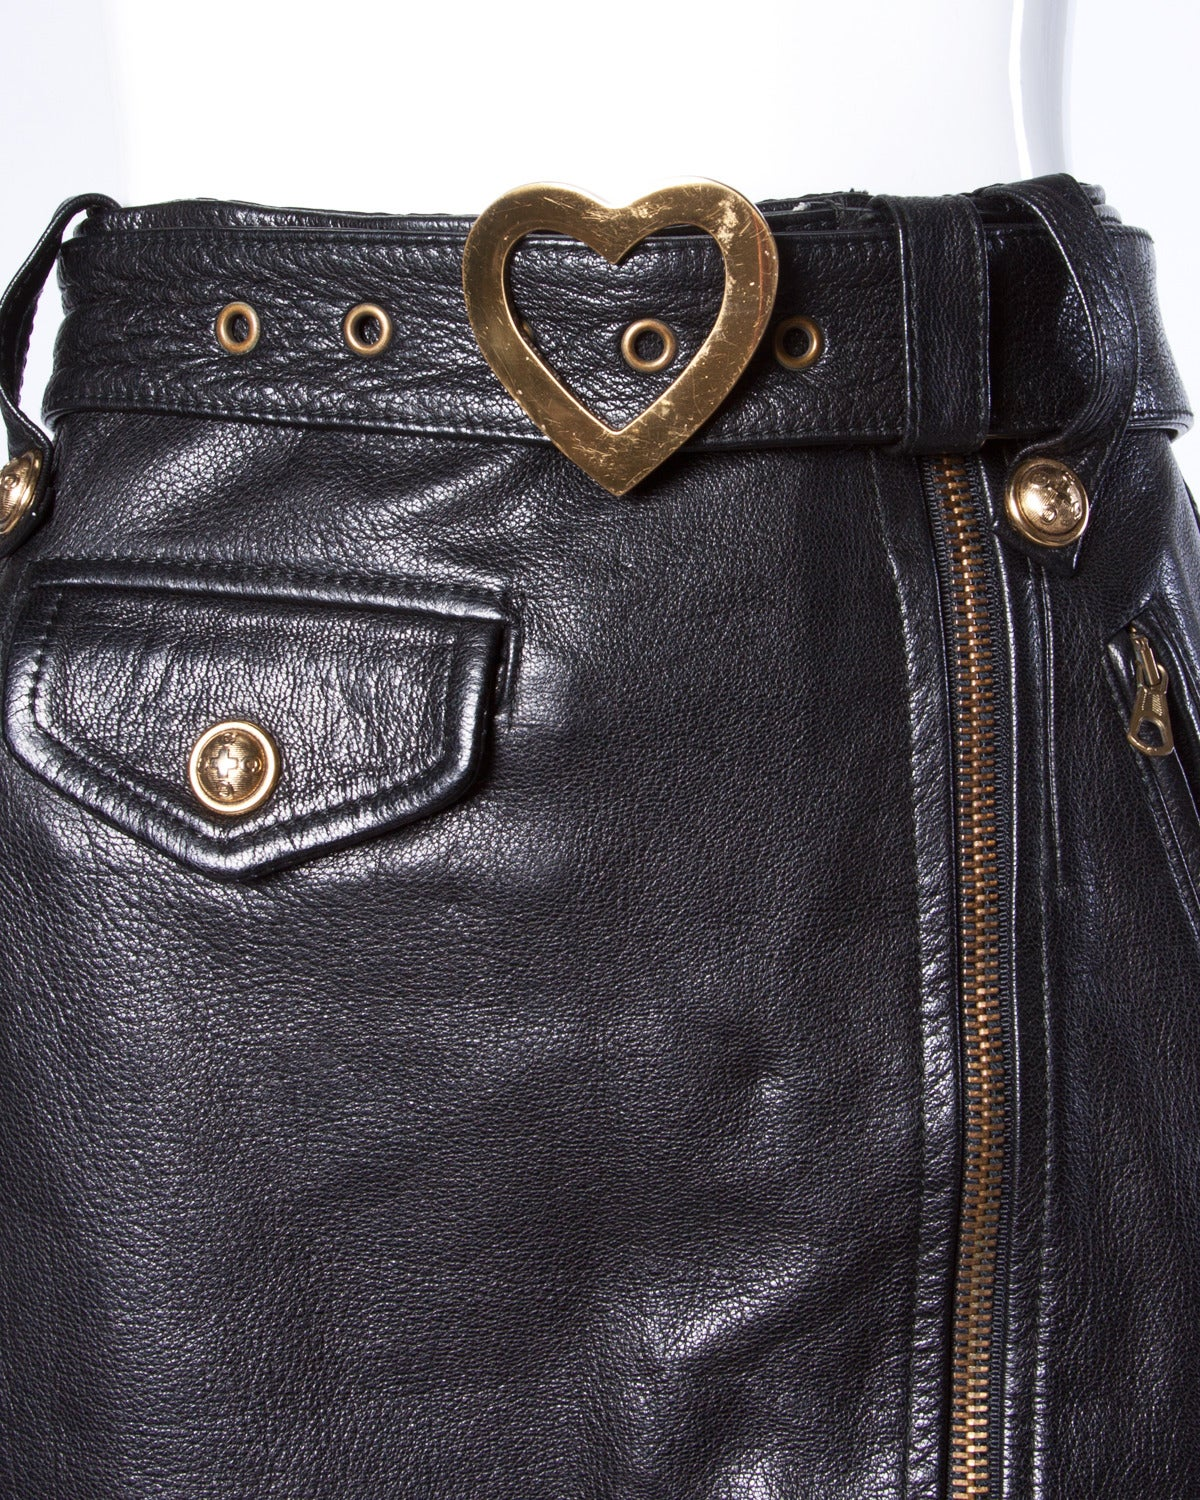 """Vintage black leather pencil skirt by Moschino. This skirt features an asymmetric zipper, """"Cheap & Chic"""" logo buttons and a heart buckle on the attached belt.   Details:  Fully Lined Front Pockets/ Side Pockets Matching Belt Attached Front"""